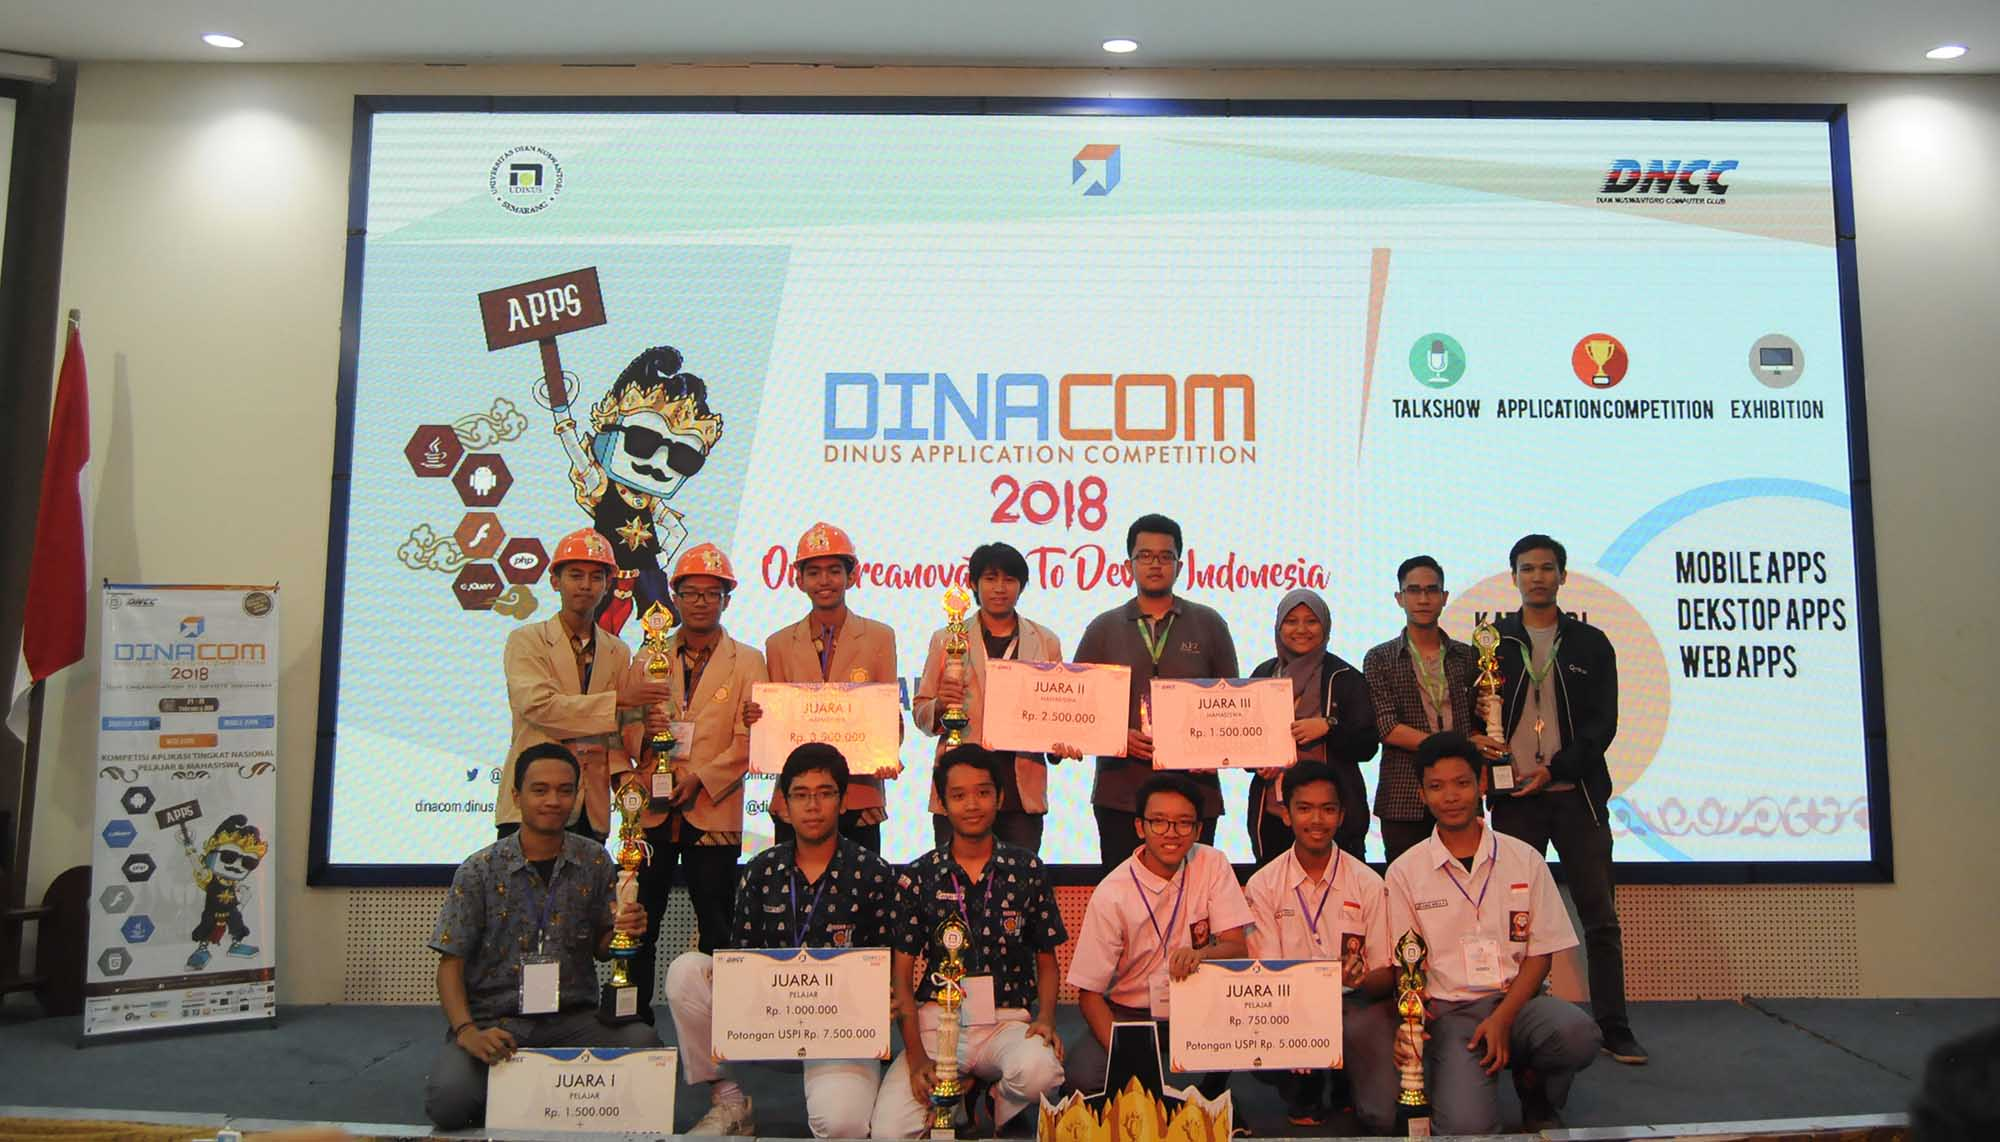 DINACOM 2018 PRESENTS THE APPLICATIONS OF INDONESIAN CHILDREN